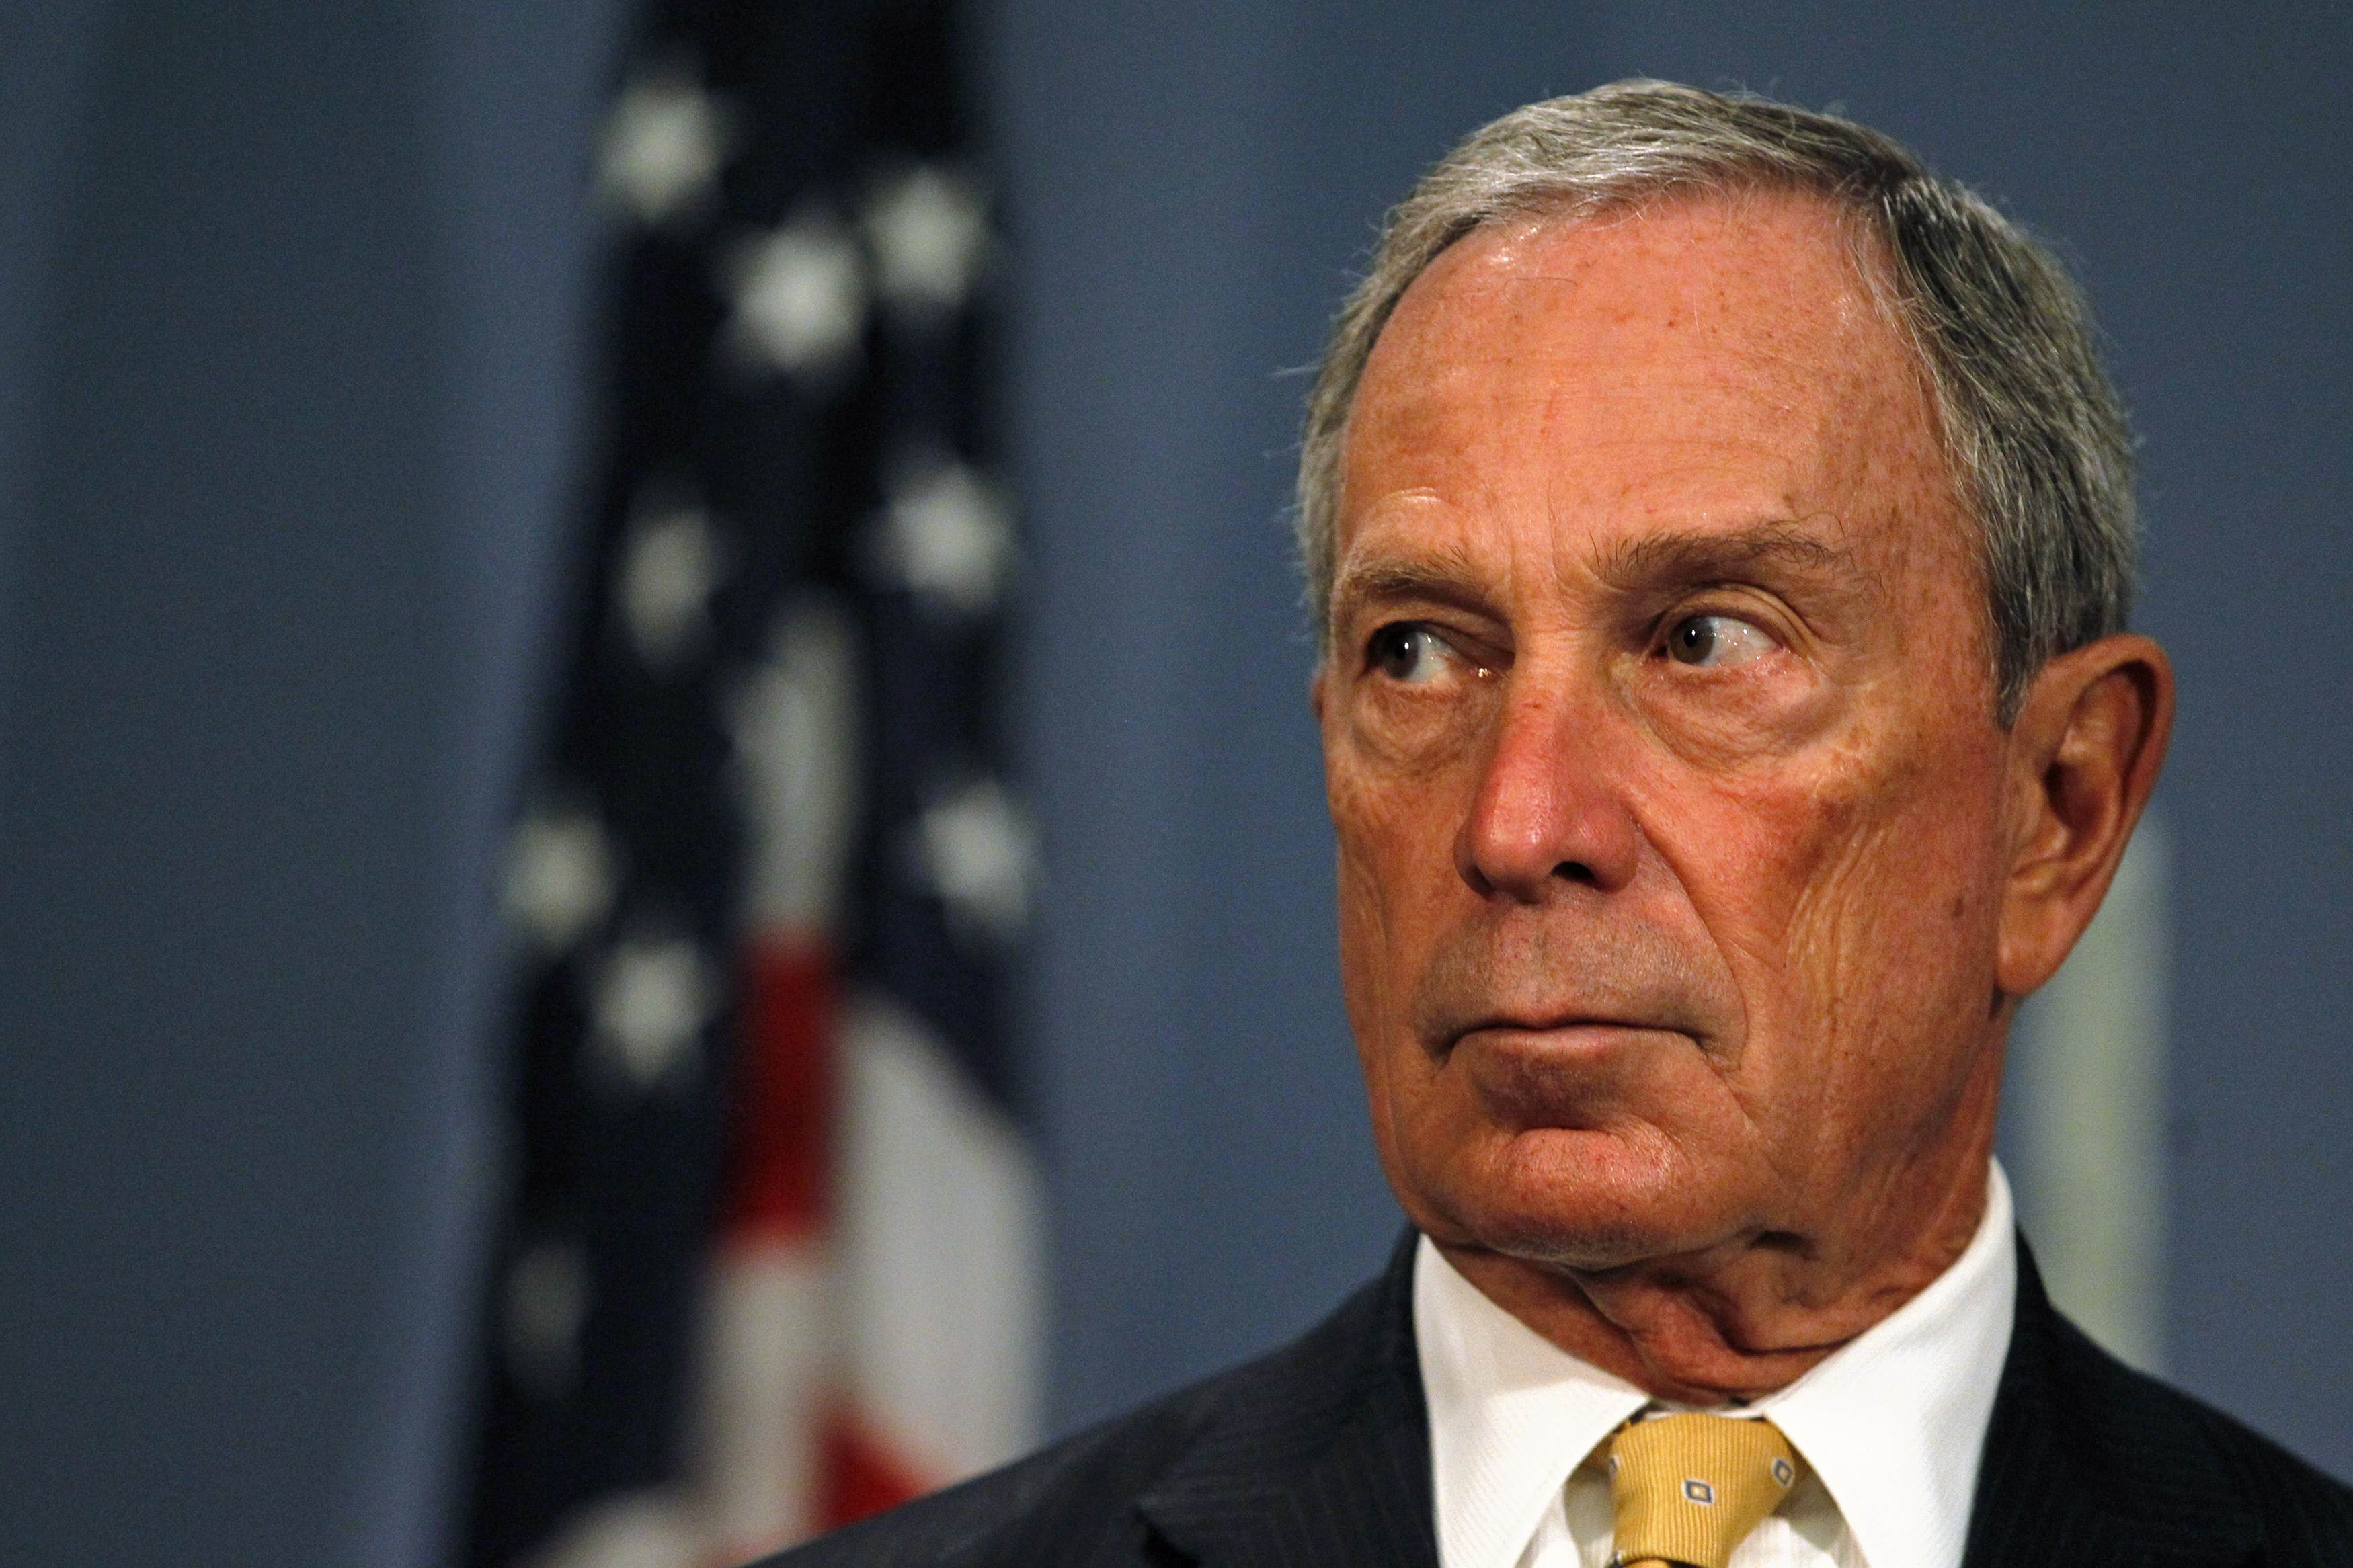 Mike Bloomberg's Independent Presidential Bid Challenges Democrat Leaders